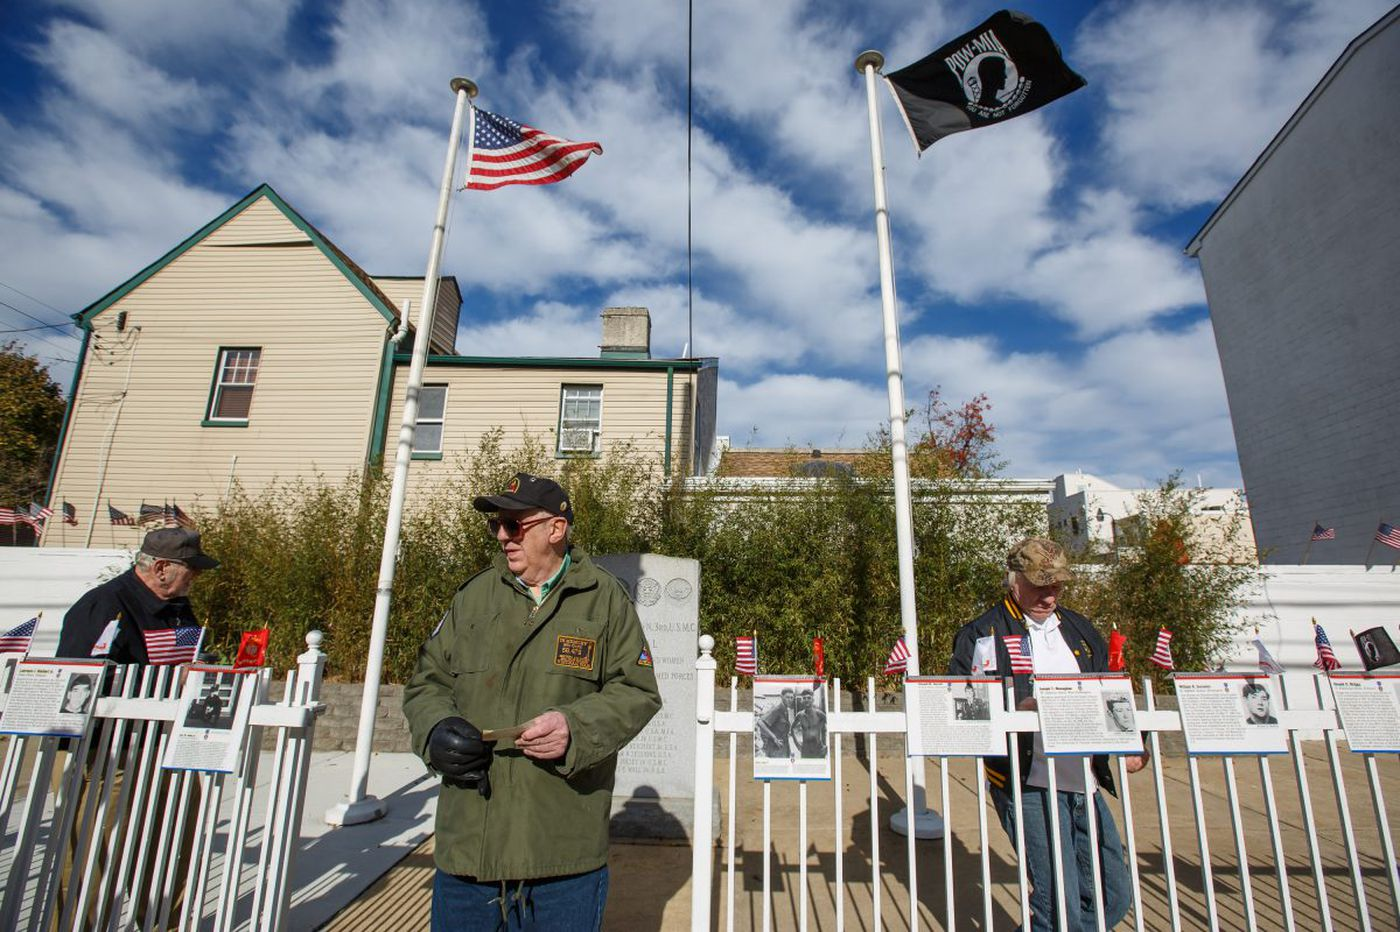 Fishtown Vietnam memorial celebrates its 50th, gives fallen soldiers 'a voice'